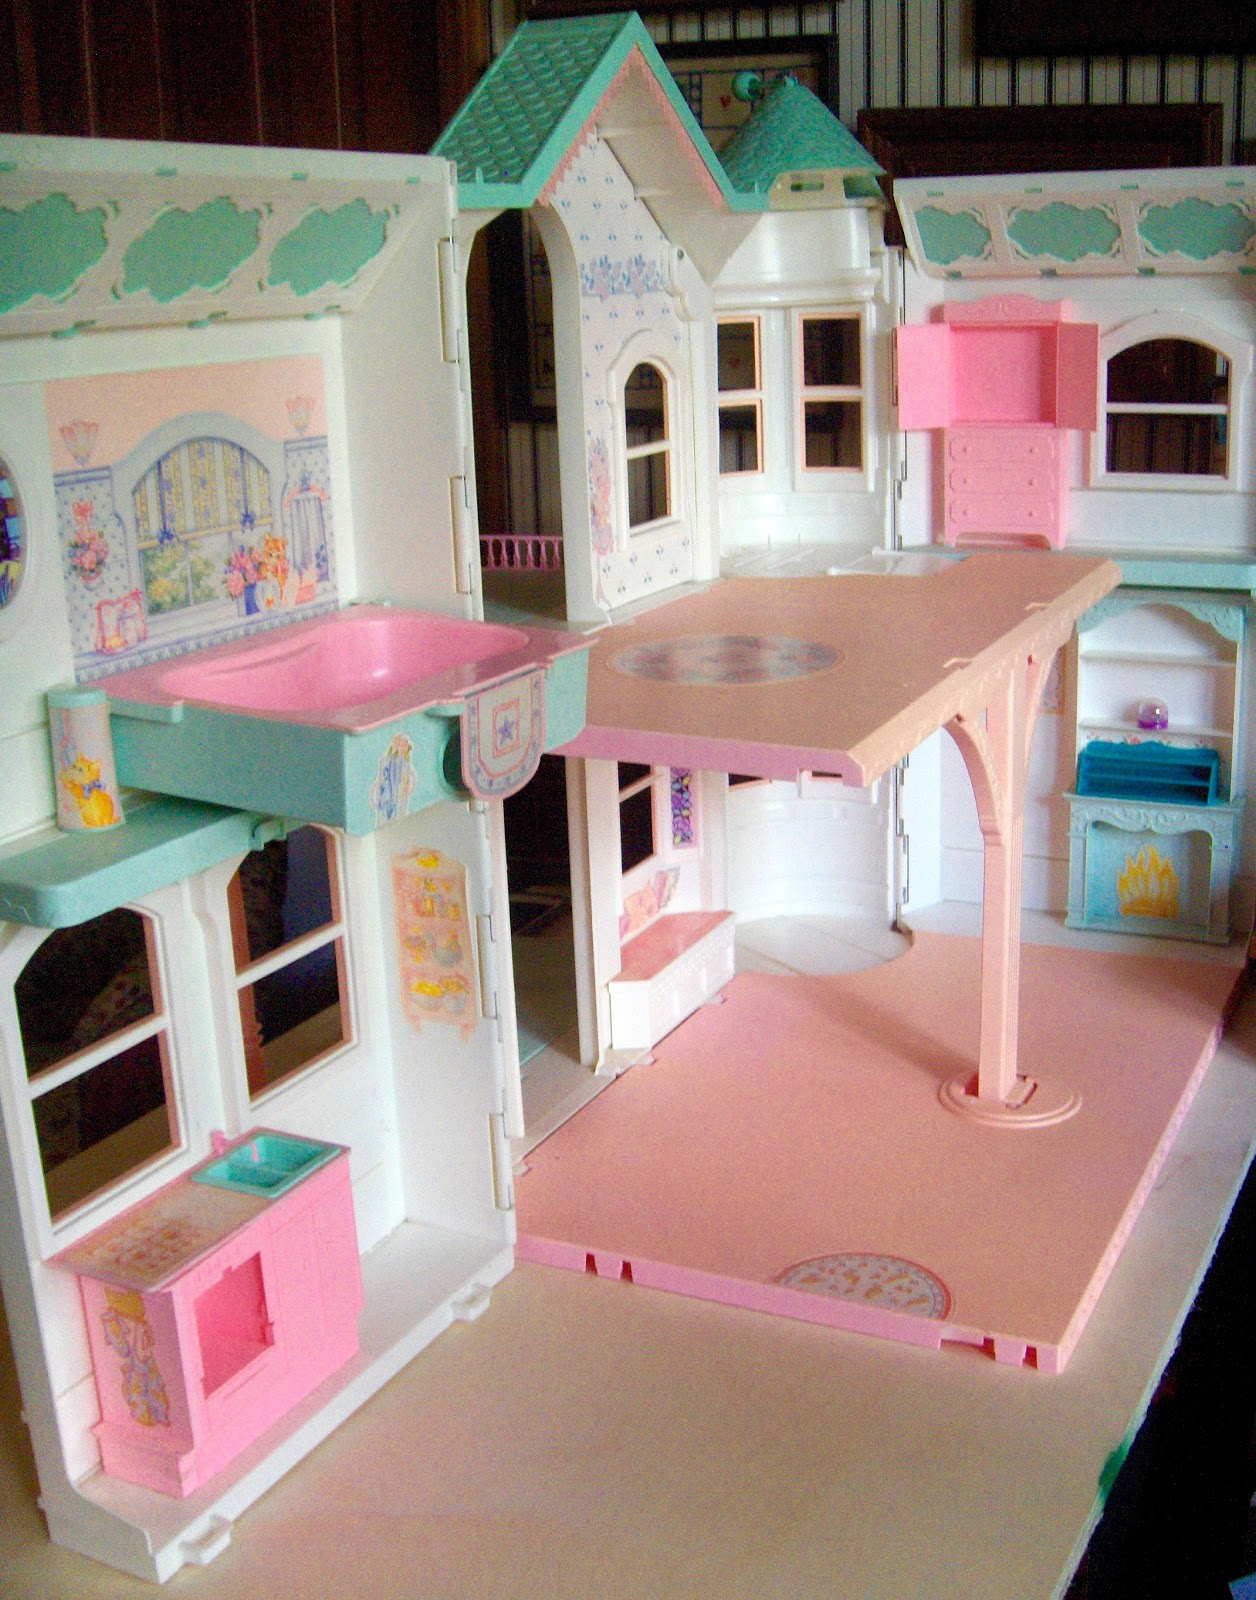 Turquoise Barbie House: Somethings Old, New, Green, Redo!: Barbie Vintage House REDO